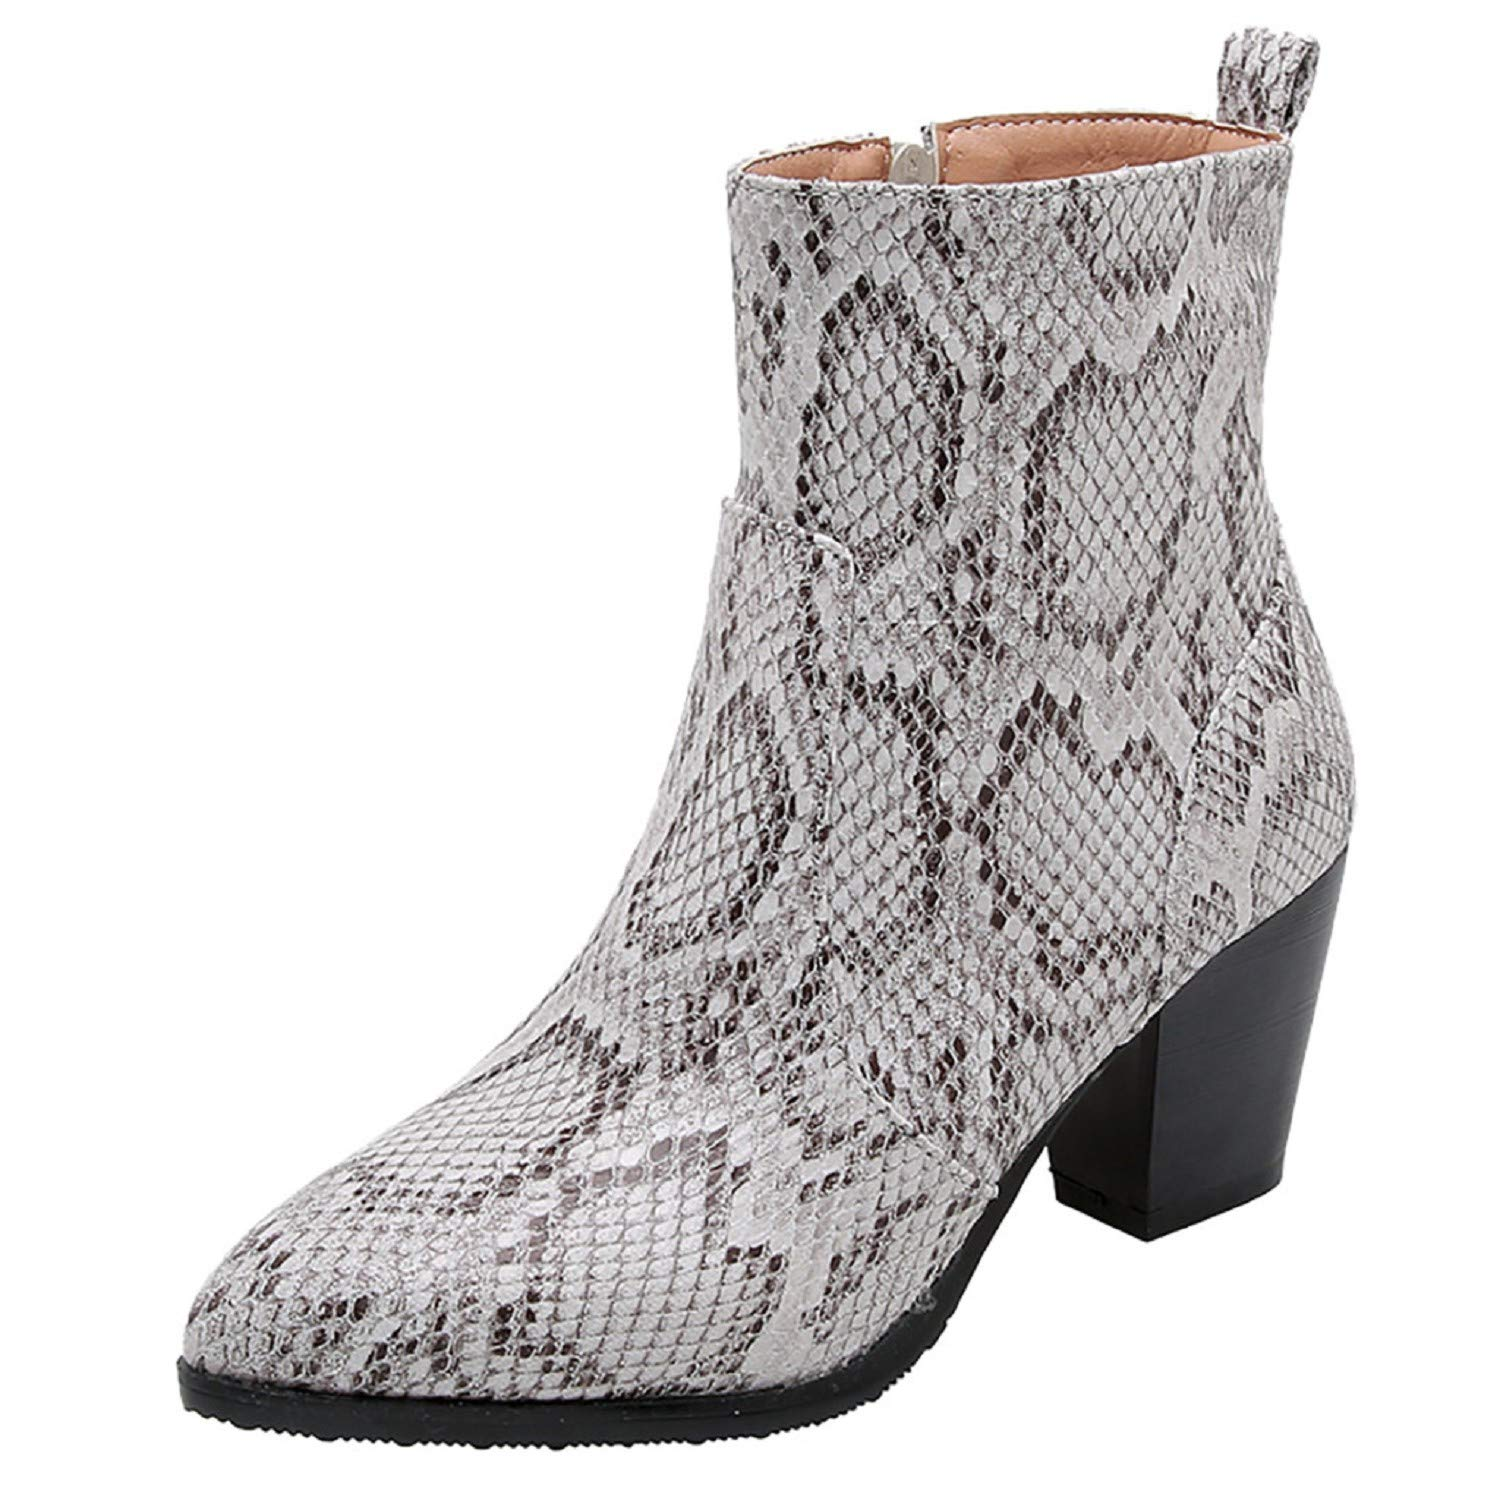 Women Snakeskin Print Boots,Tsmile Extra Wide Faux Leather Warm Casual Chunky High Heel Party Light Ankle Booties Gray by Tsmile Winter